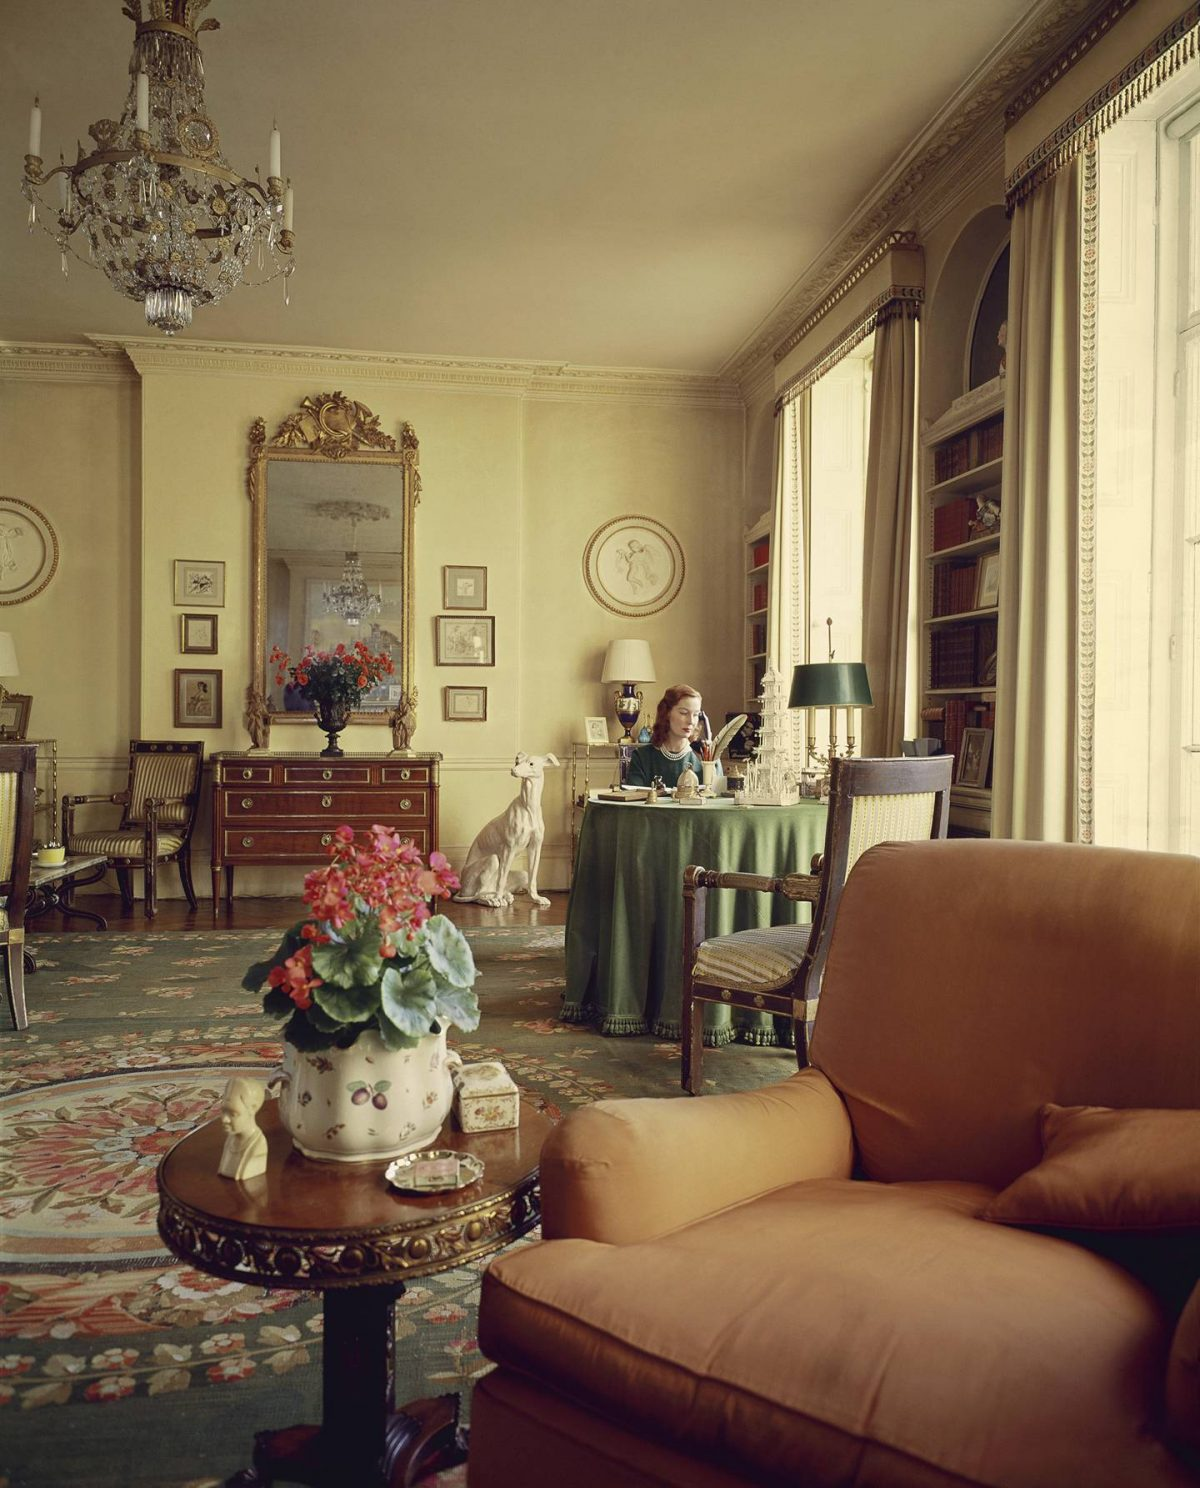 The interior of the Profumo's house